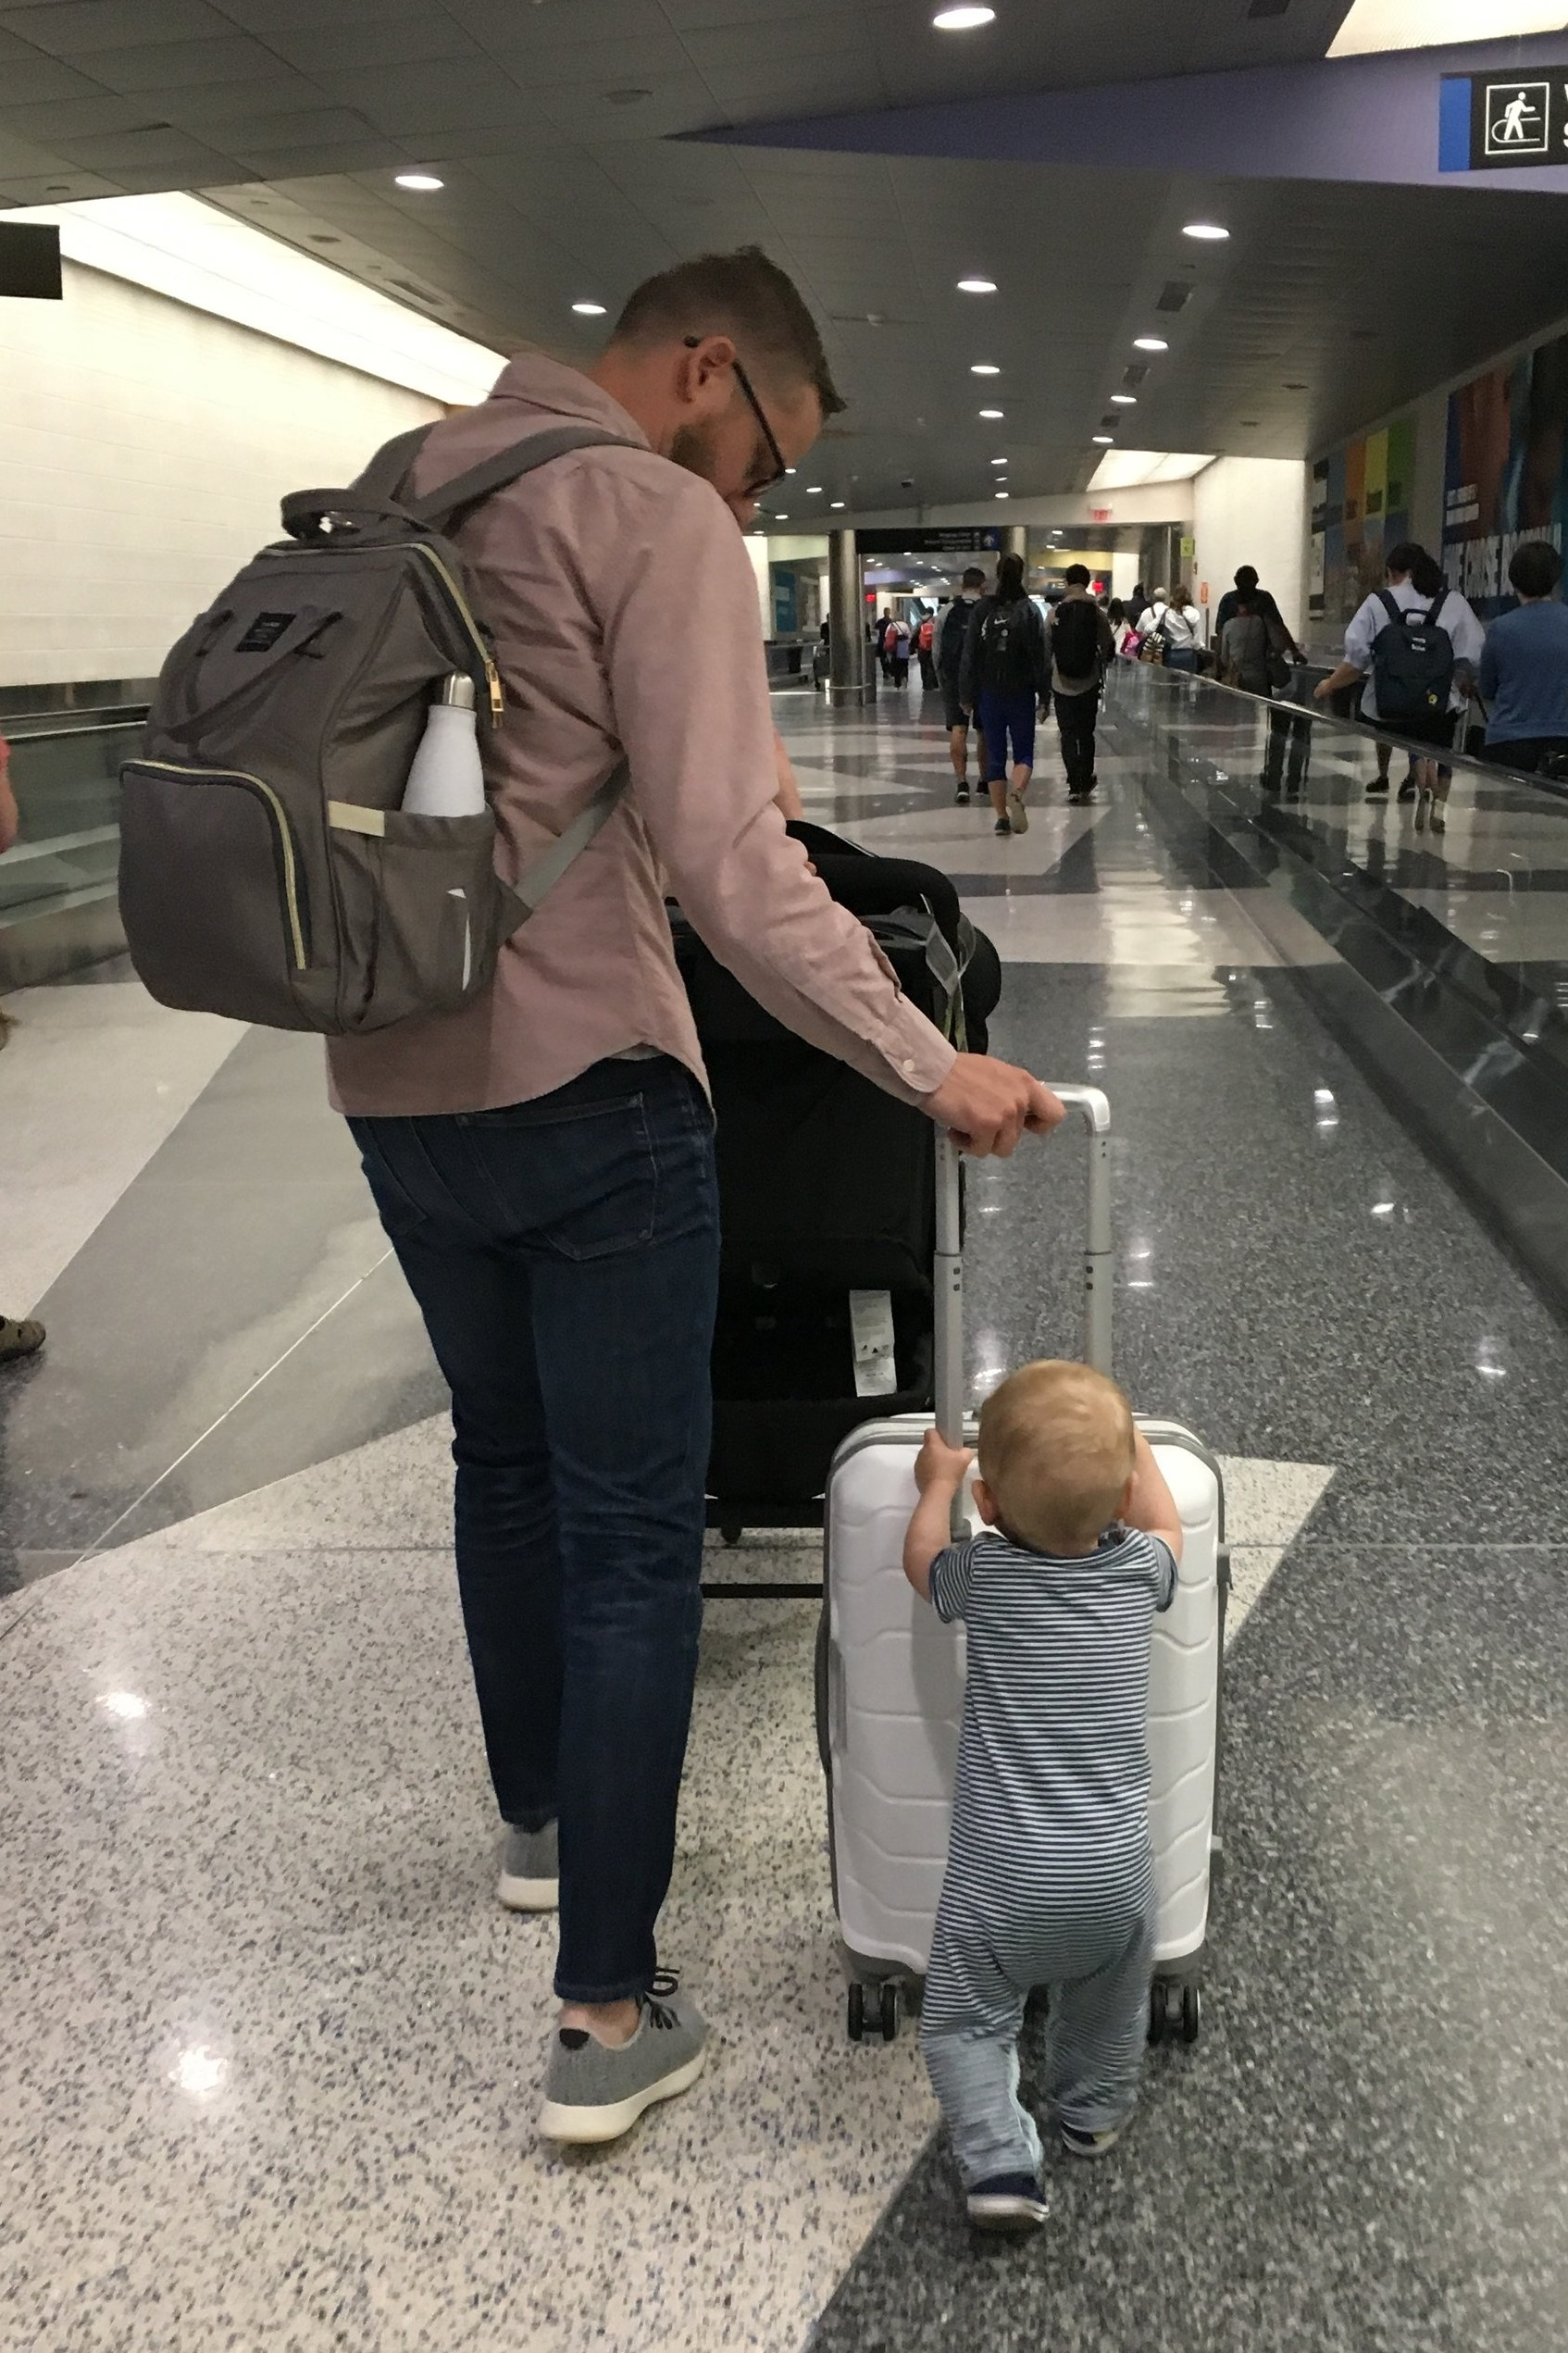 Functional & stylish diaper bag for traveling & flying with essentials